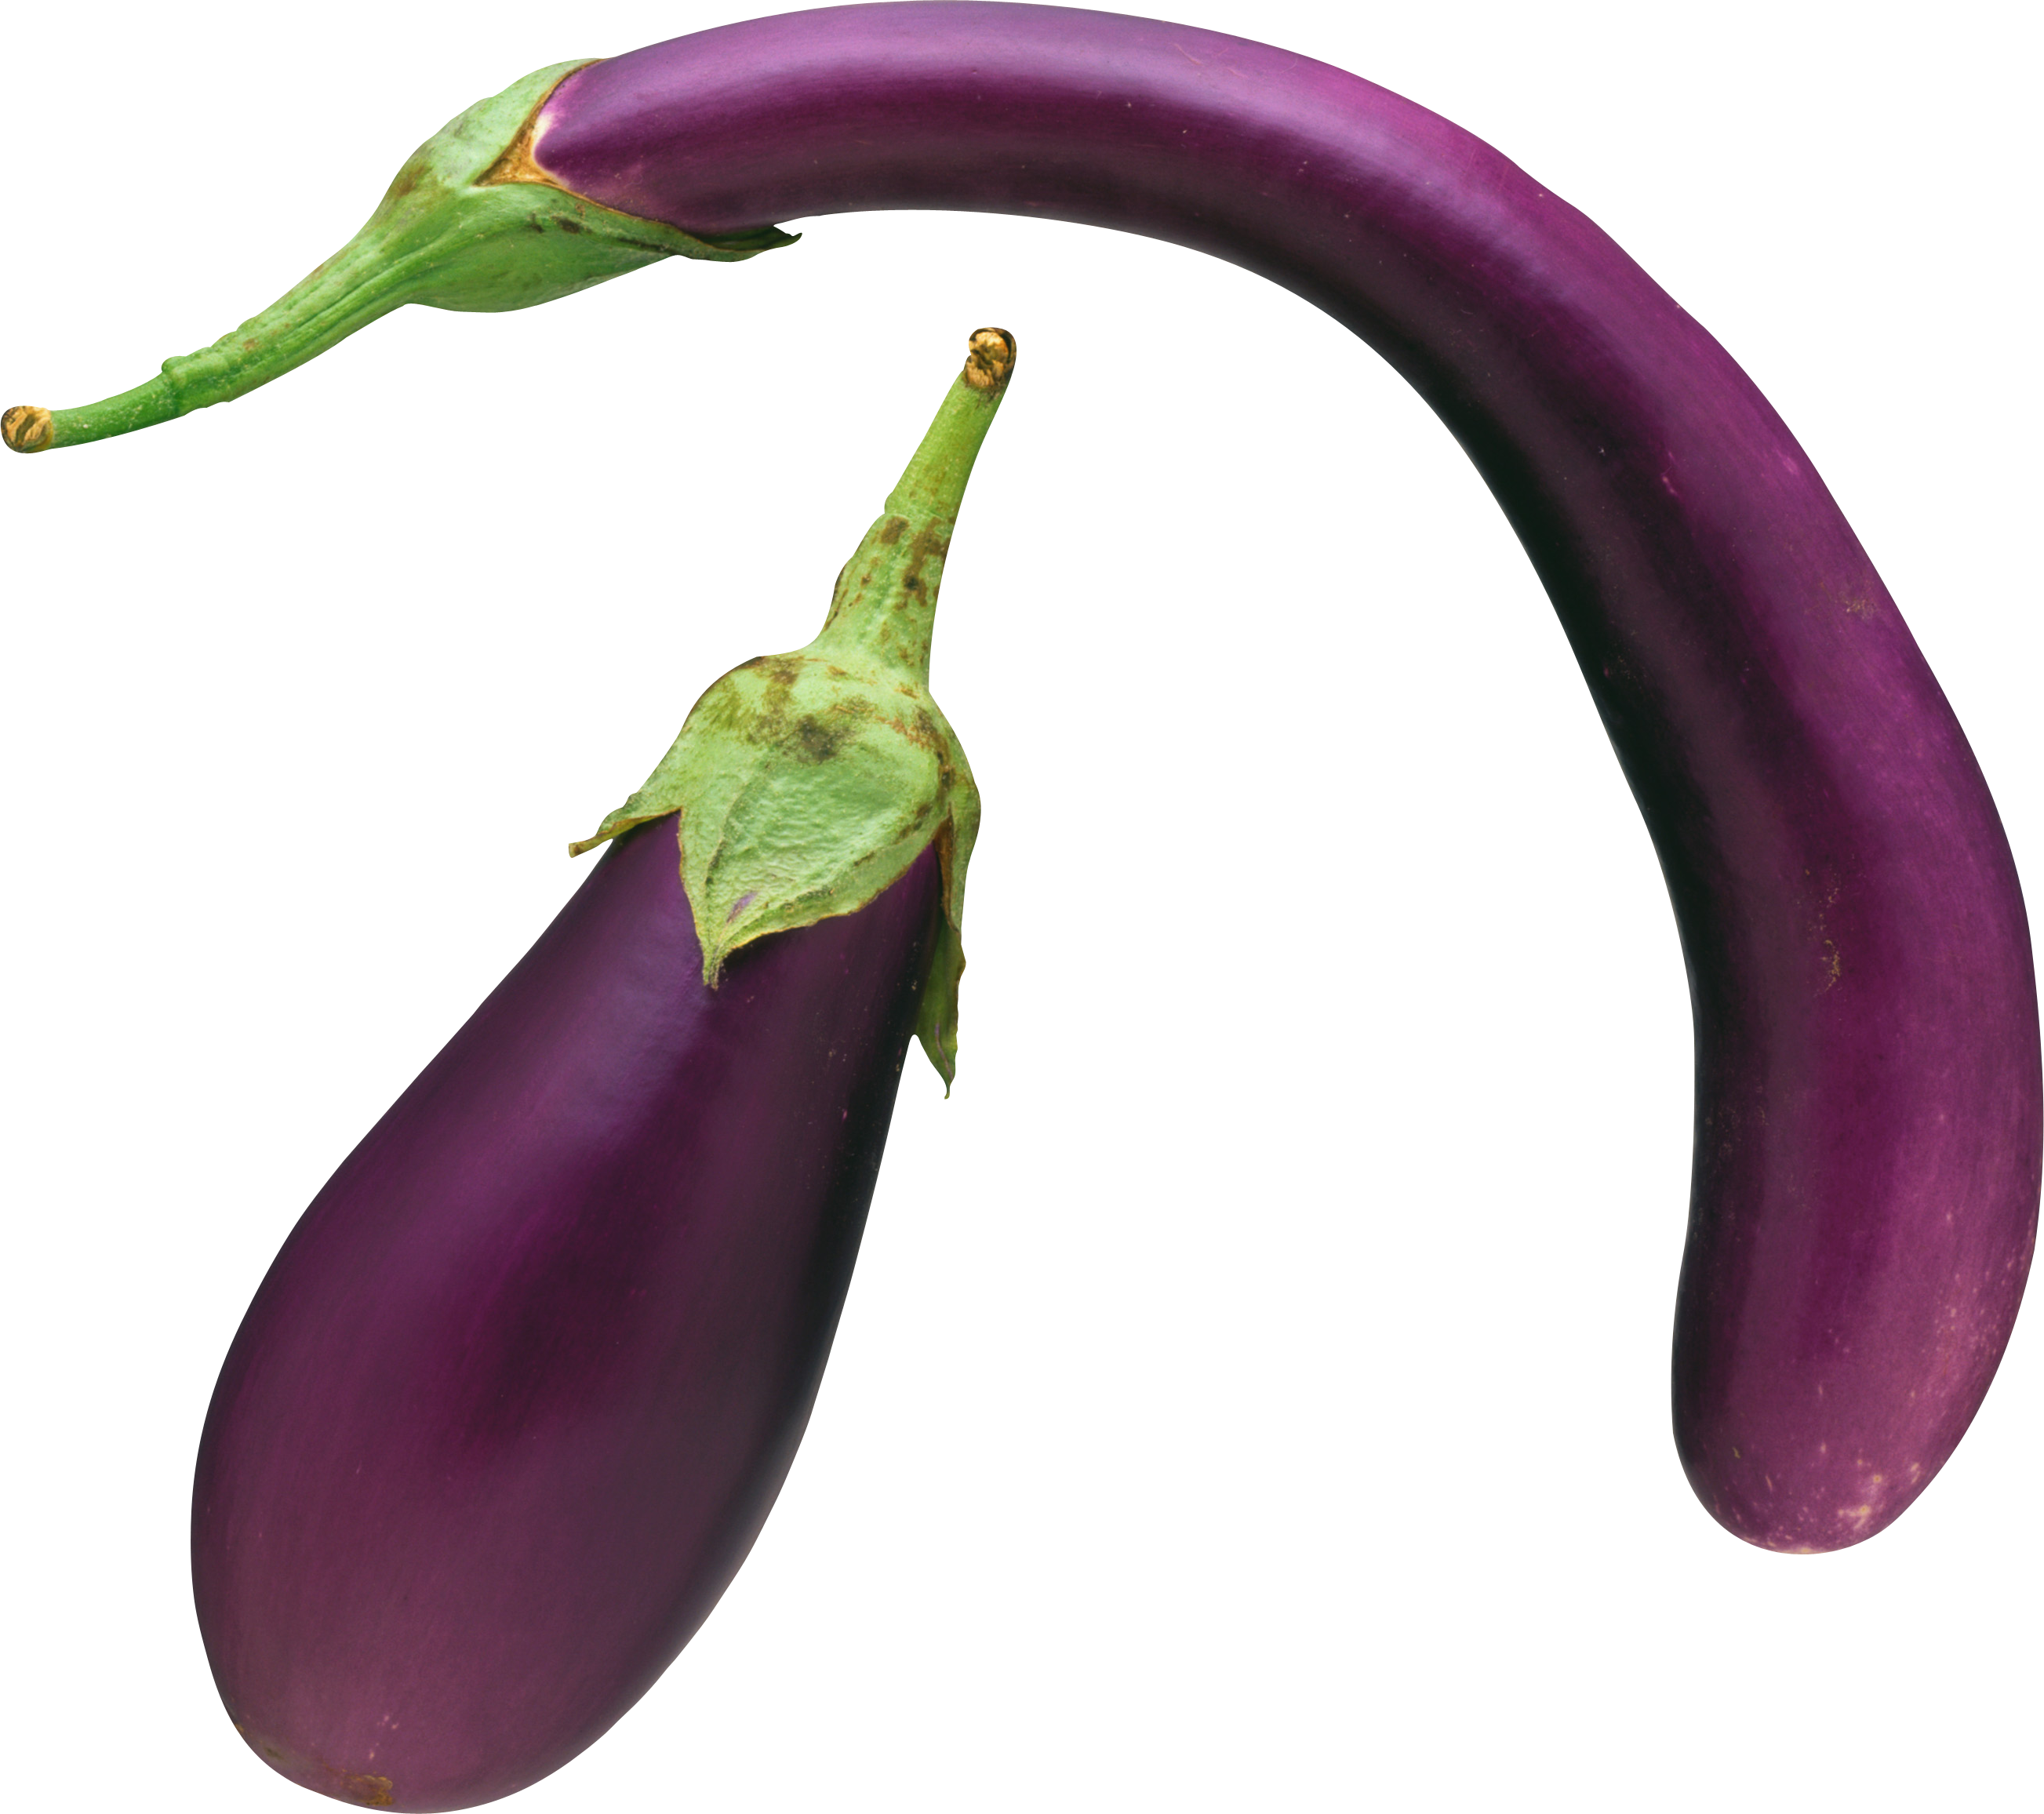 Eggplant transparent background